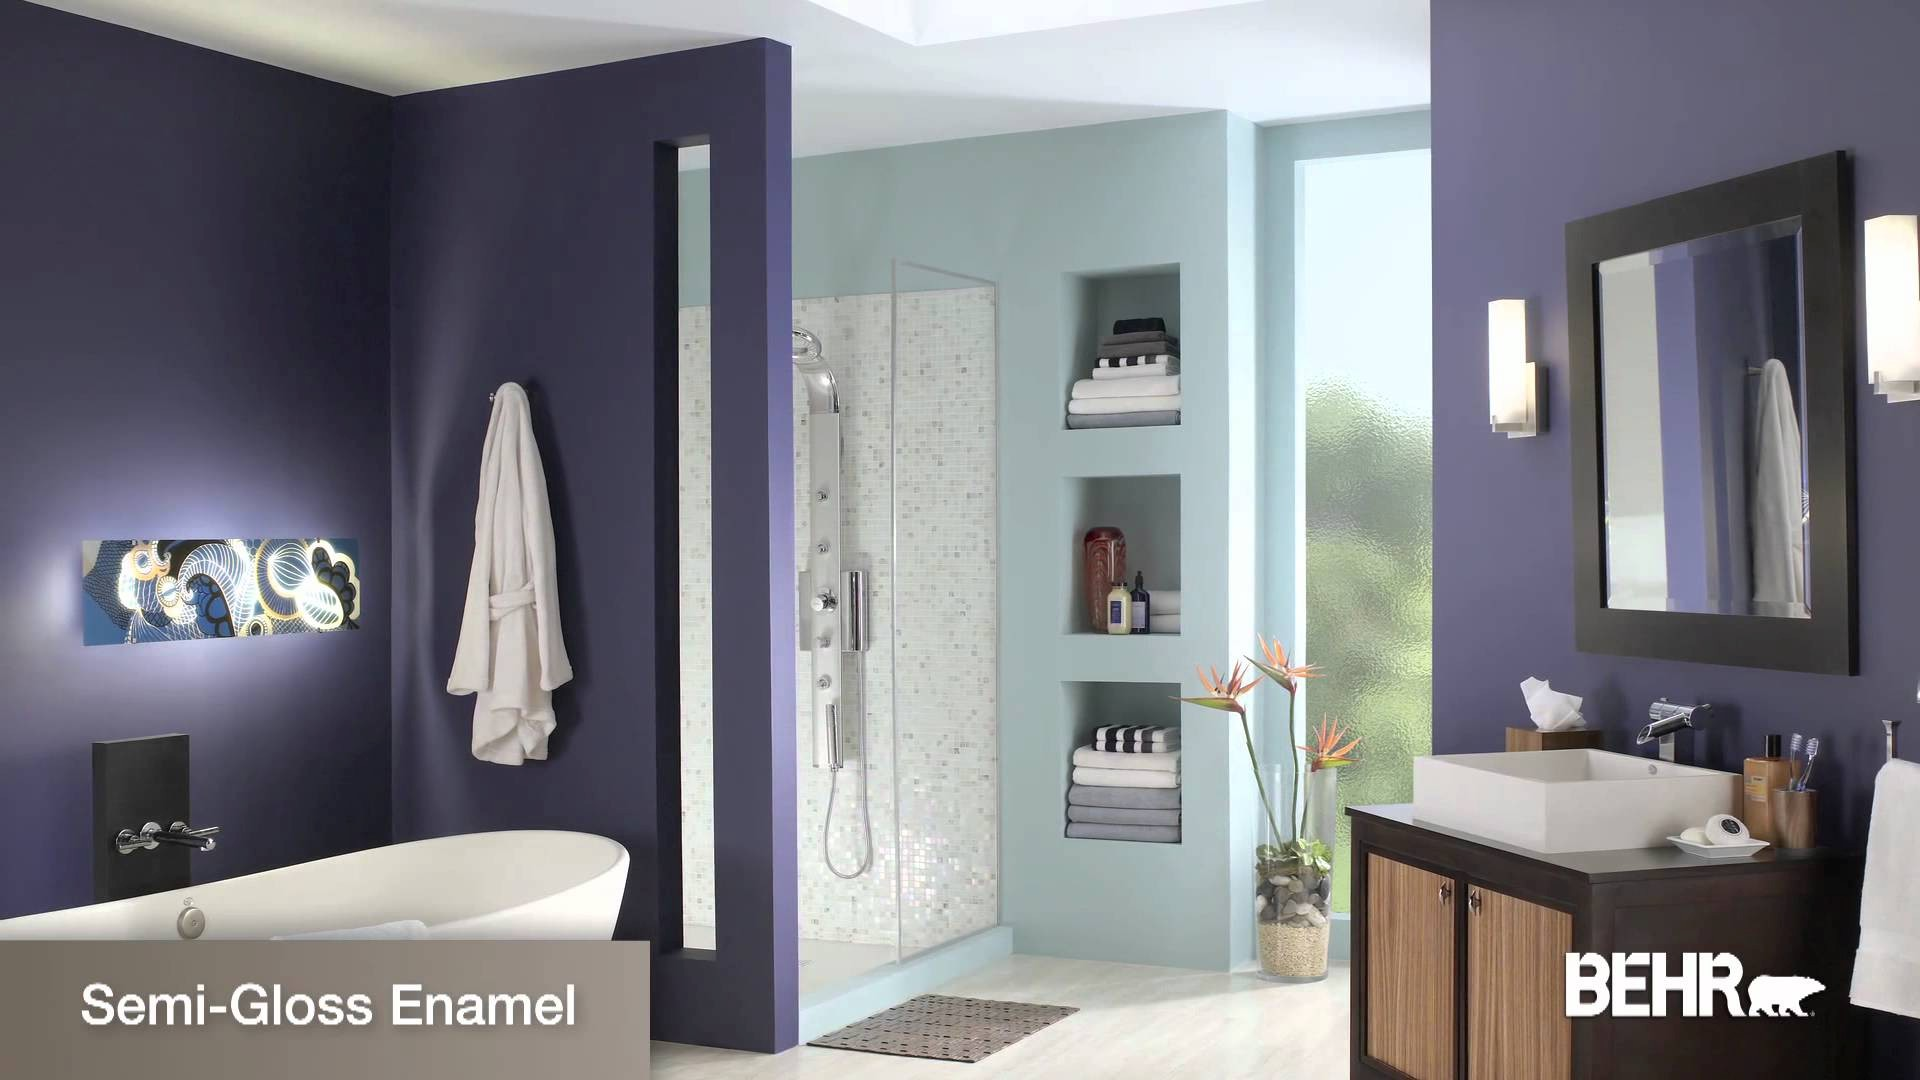 Charmant Paint Sheen For Bathroom Cute How To Paint Interiors Choosing Sheen 4 Ideas